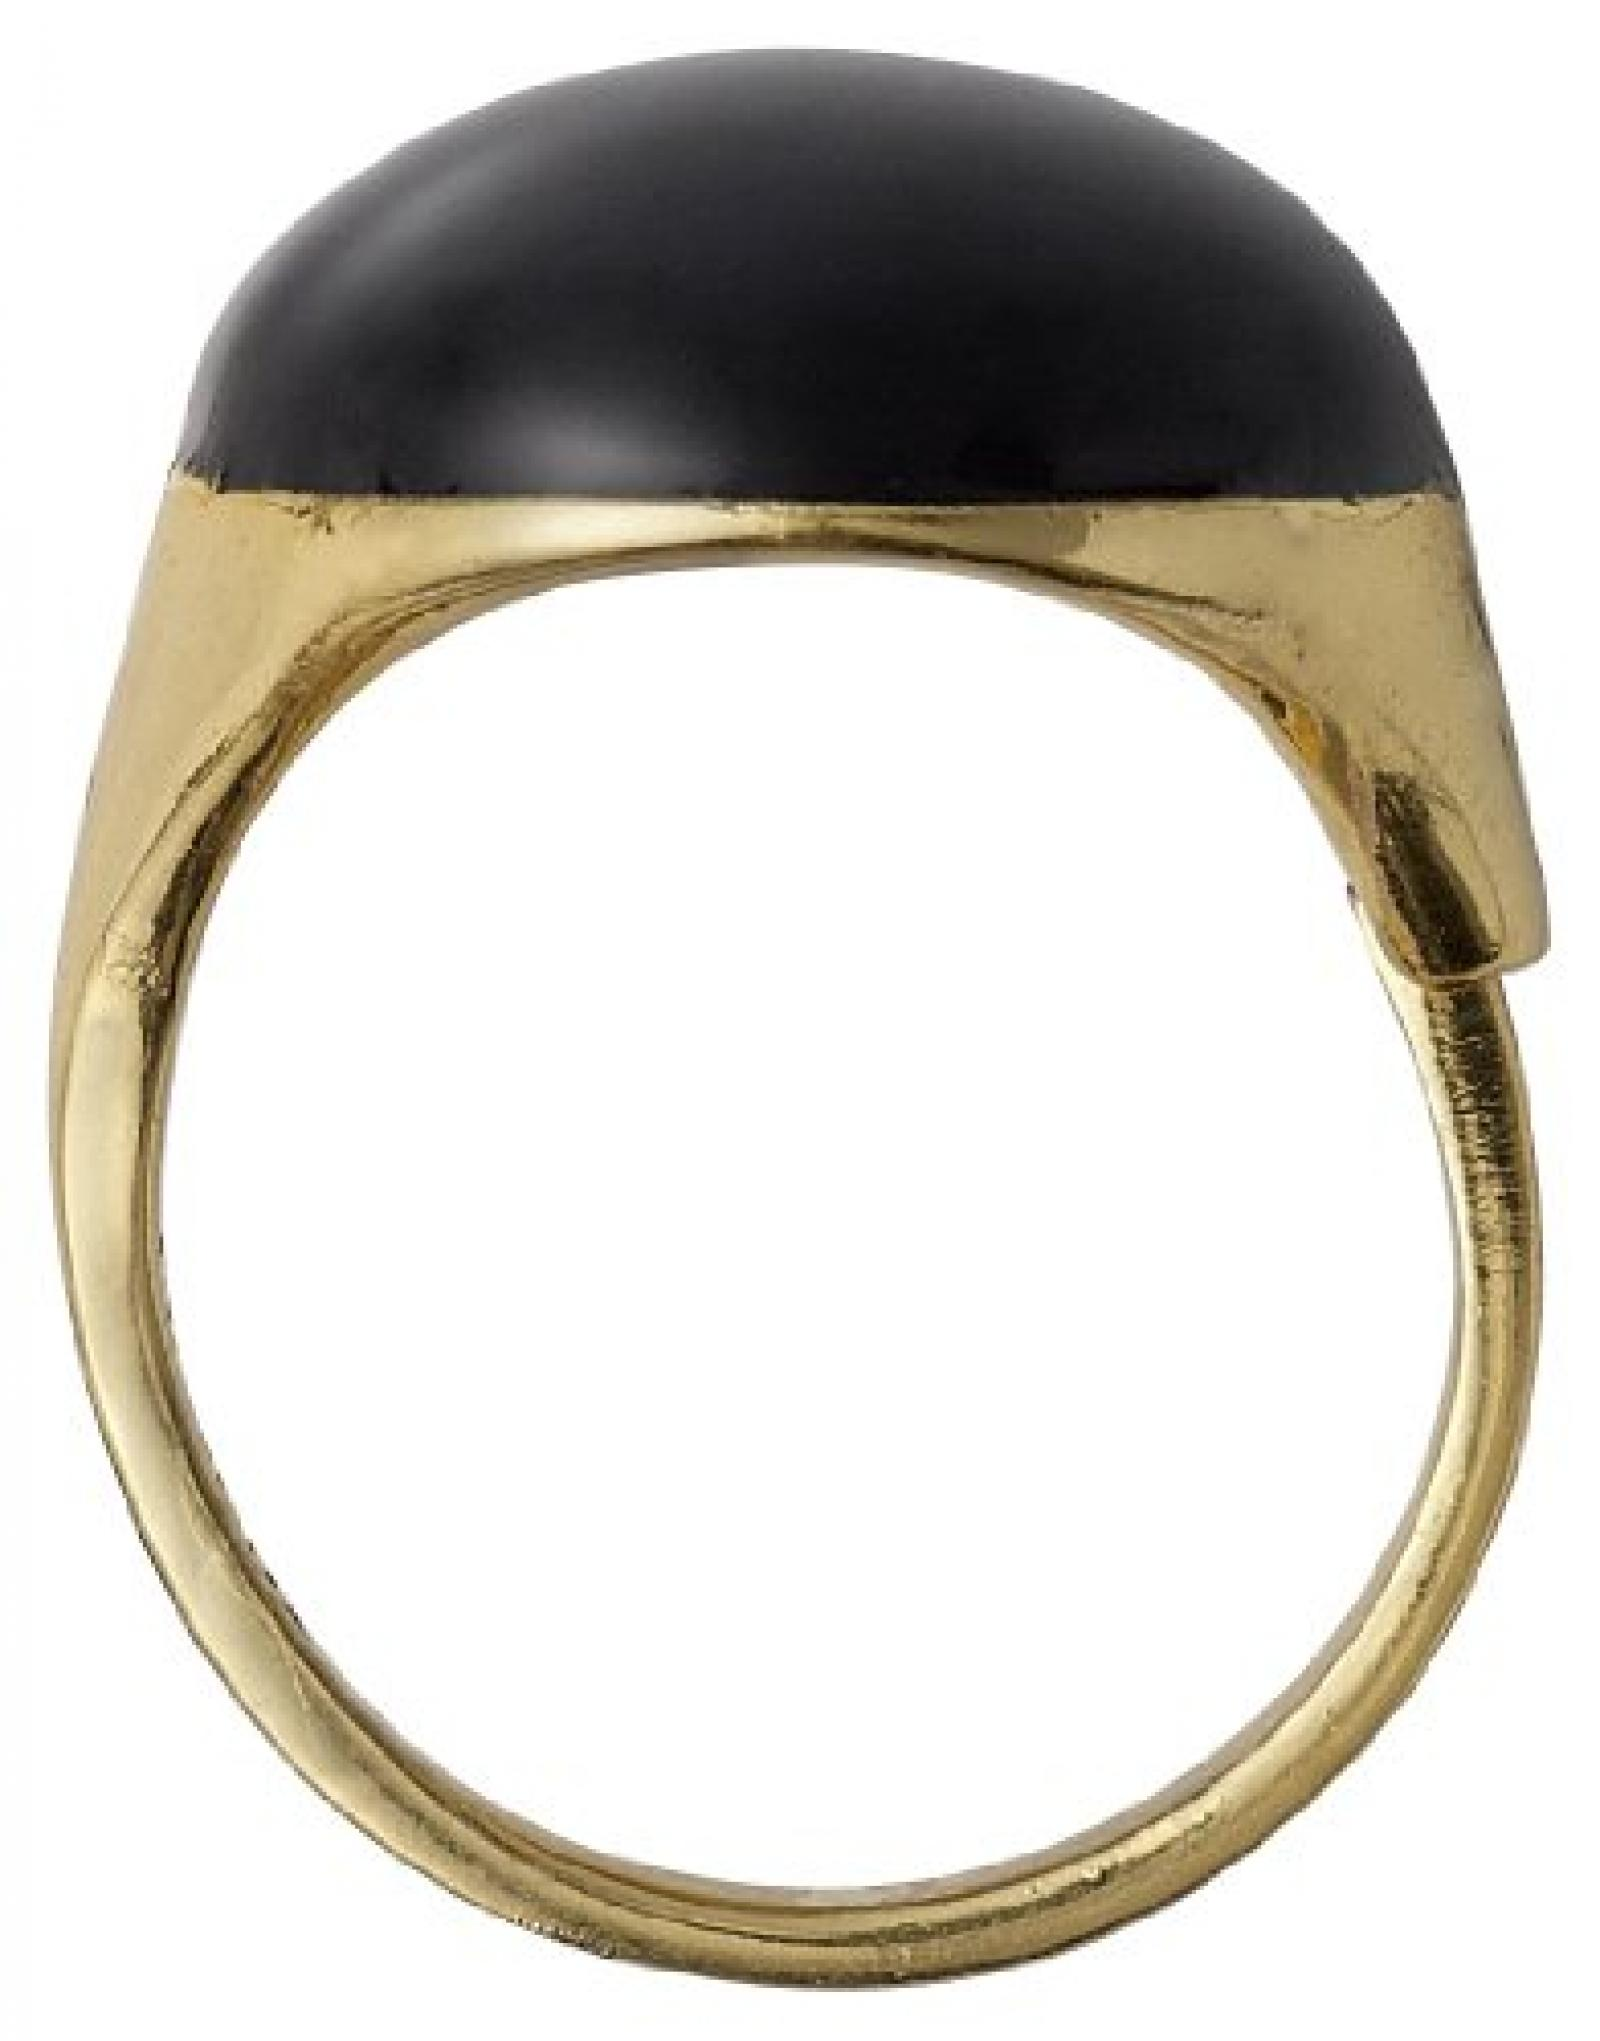 Pilgrim Jewelry Damen-Ring Messing Pilgrim Damen-Ring aus der Serie Enamel world vergoldet,schwarz  2.0 cm 251332104